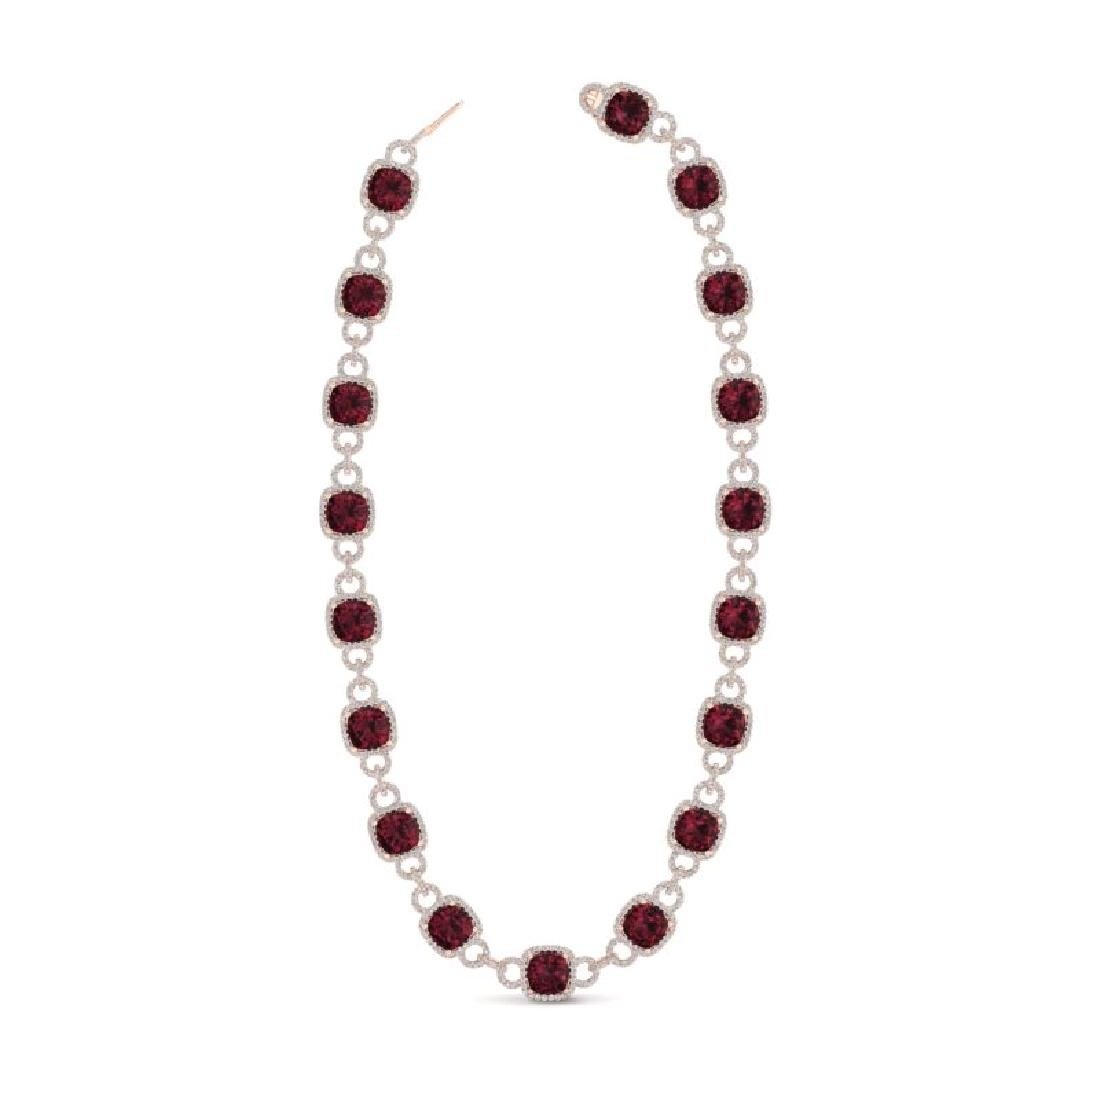 66 CTW Garnet & VS/SI Diamond Necklace 14K Rose Gold